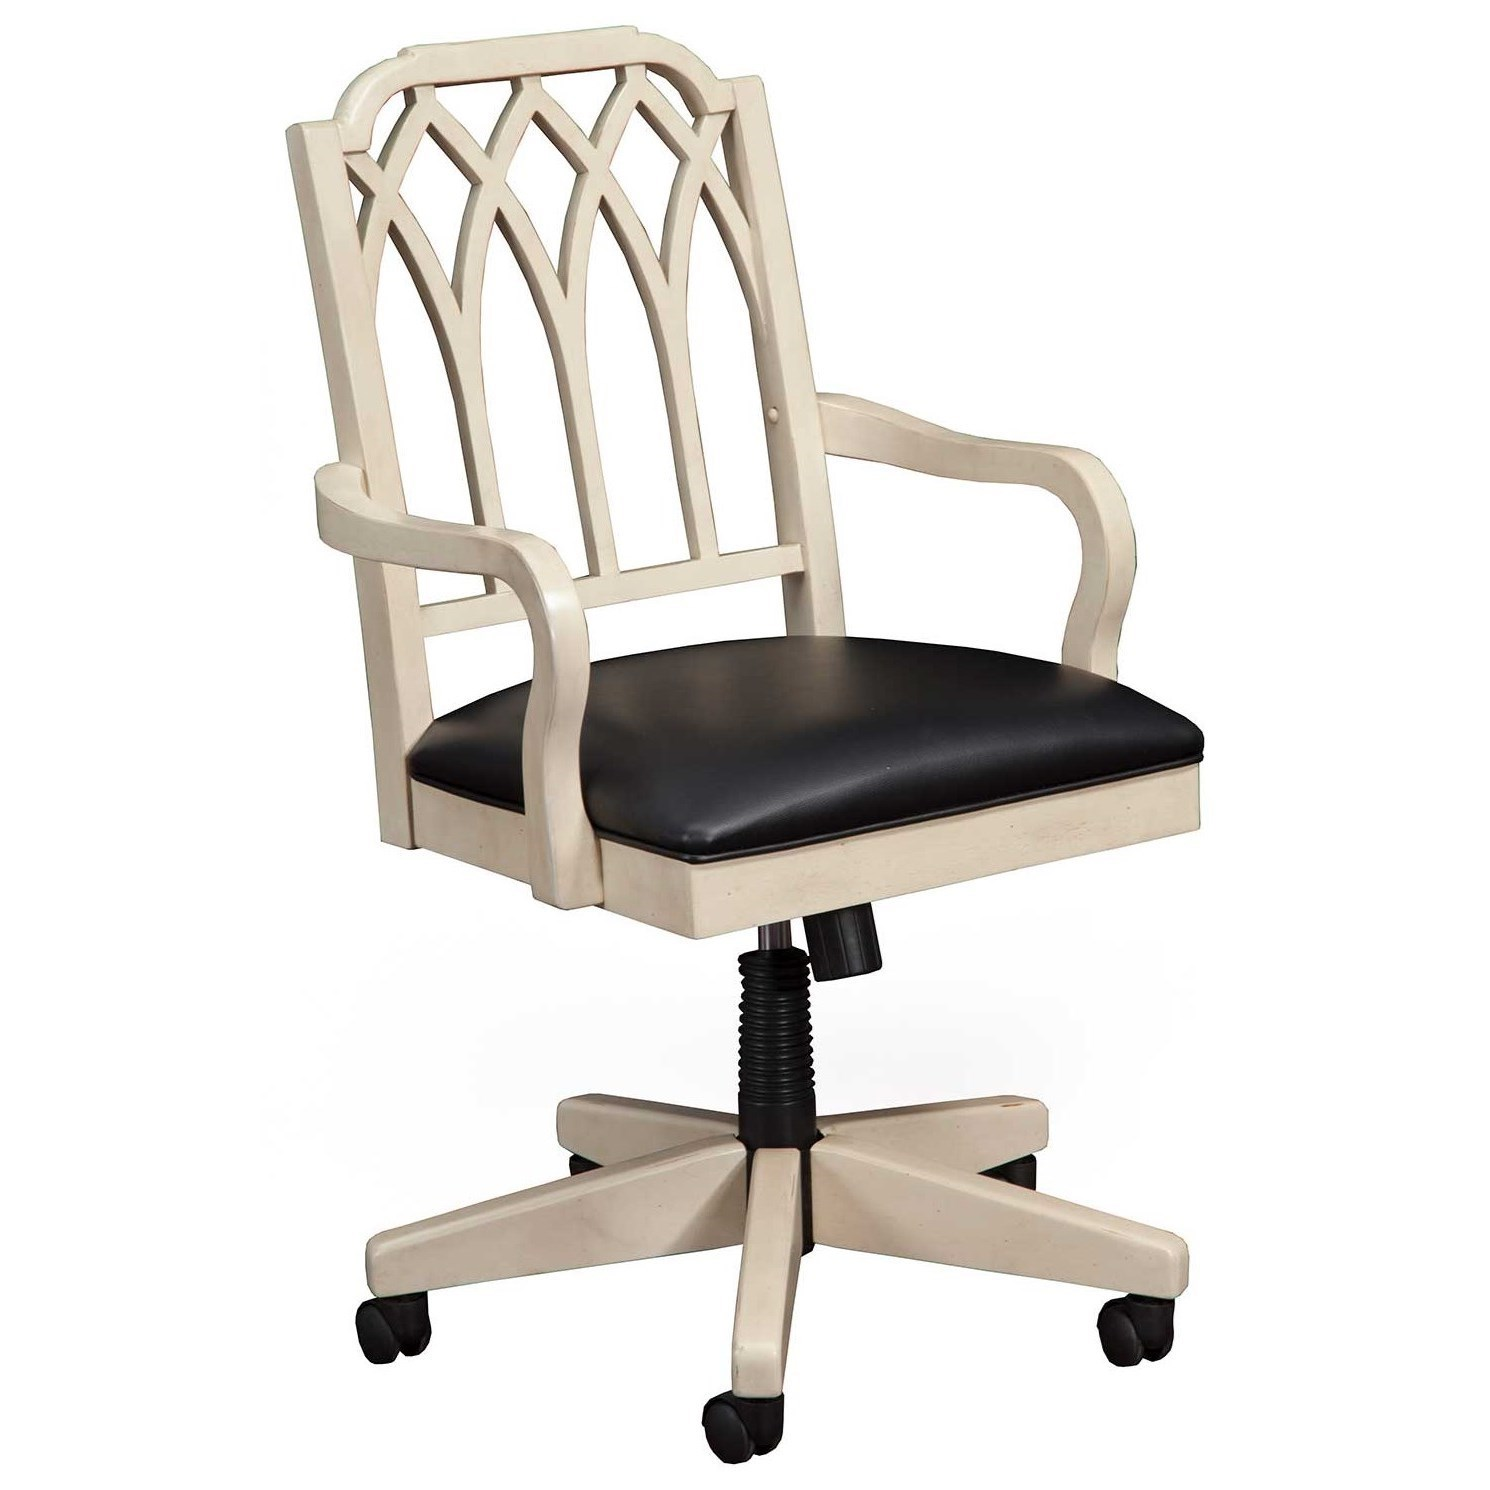 vintage office chairs mesh chair back support winners only artisan relaxed with easy to clean upholstered seat by